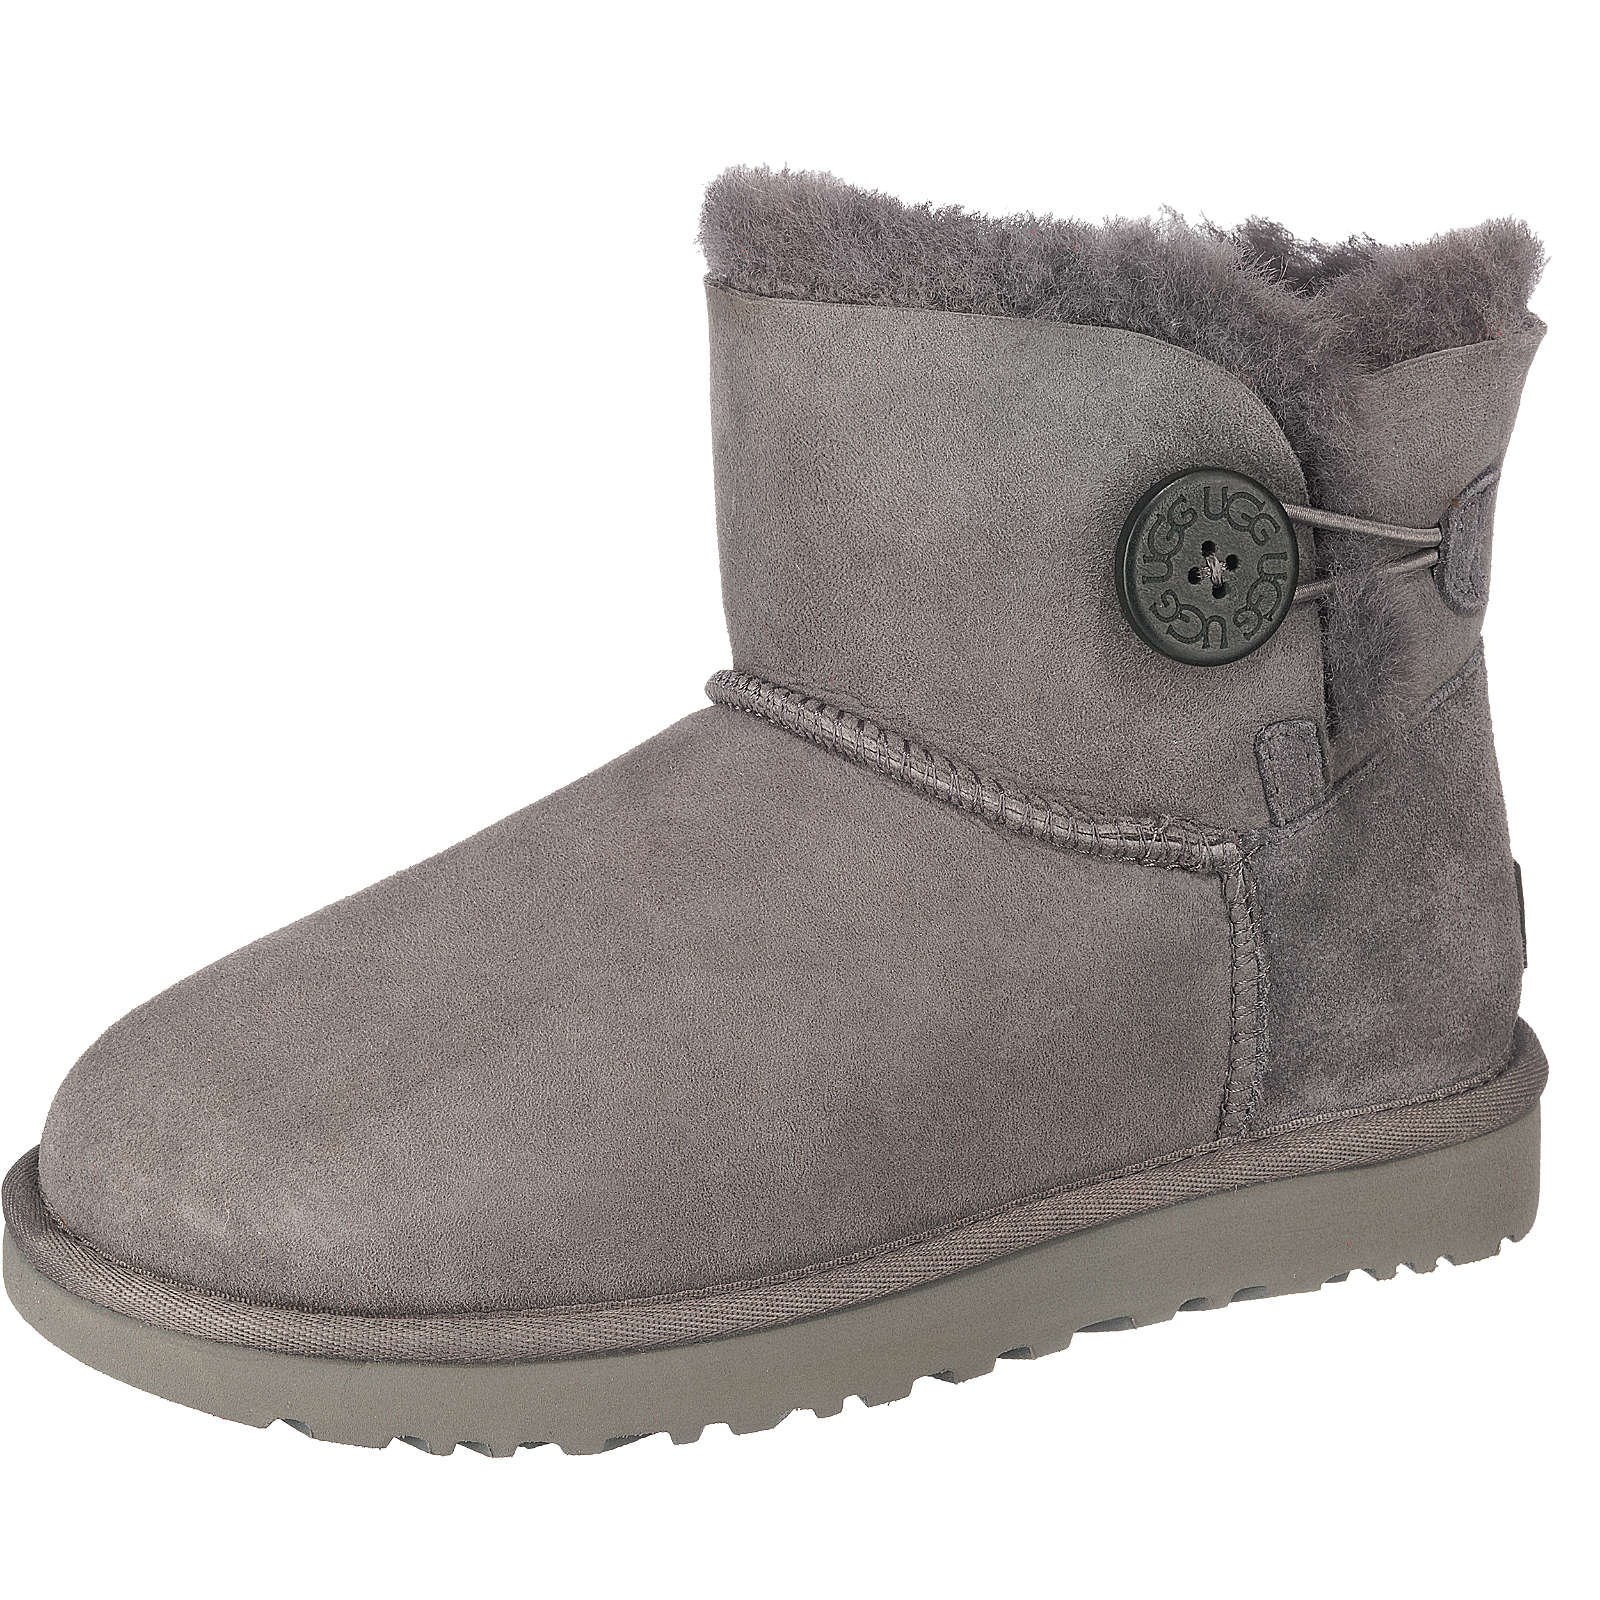 UGG W MINI BAILEY BUTTON II Winterstiefeletten grau Damen Gr. 38